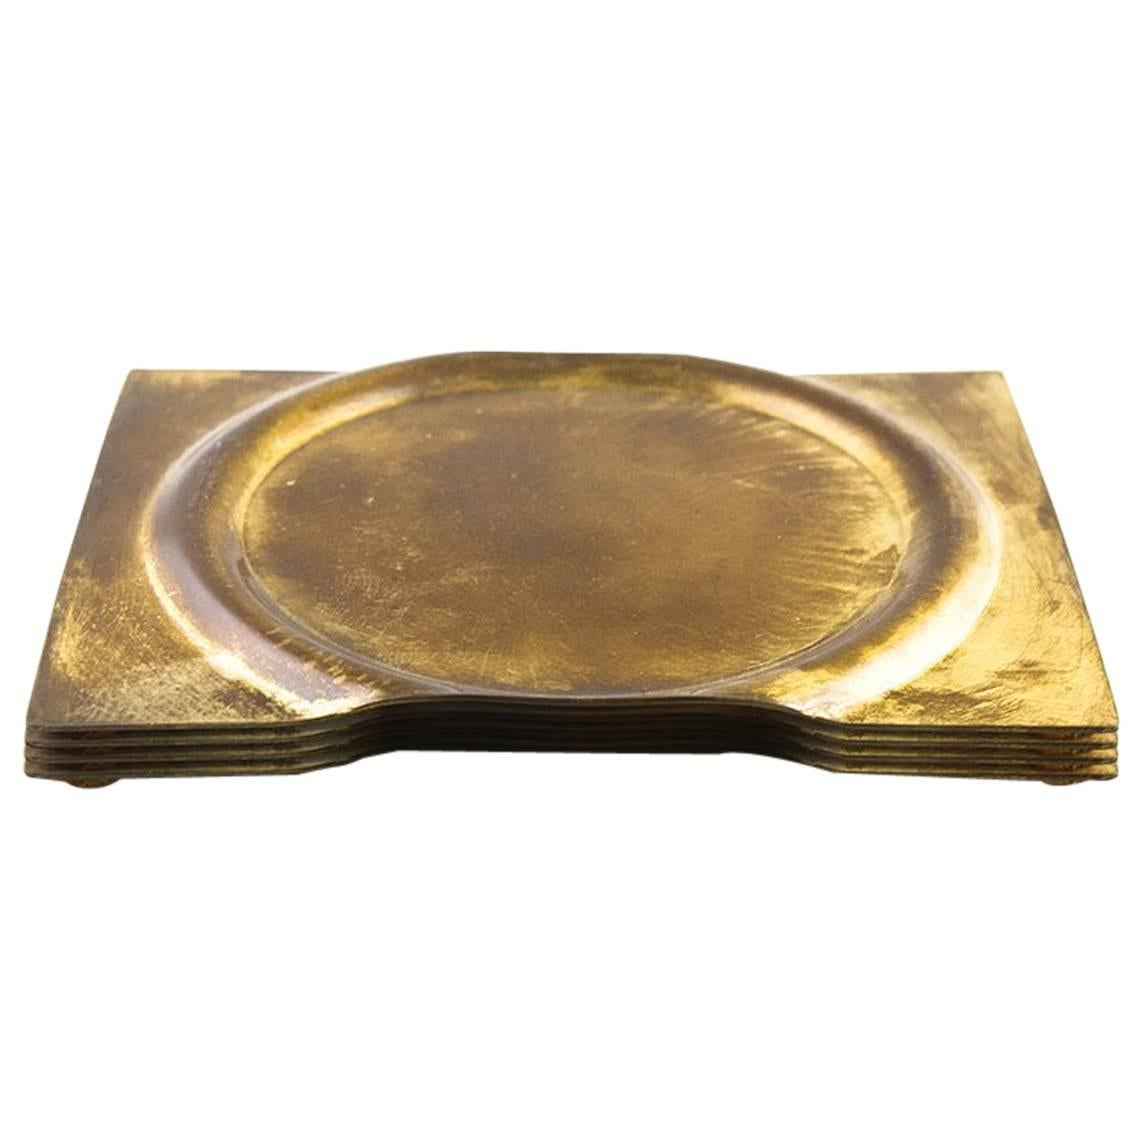 Coasters Set of Four. Formed from Brass Sheets and Handcrafted in Chicago